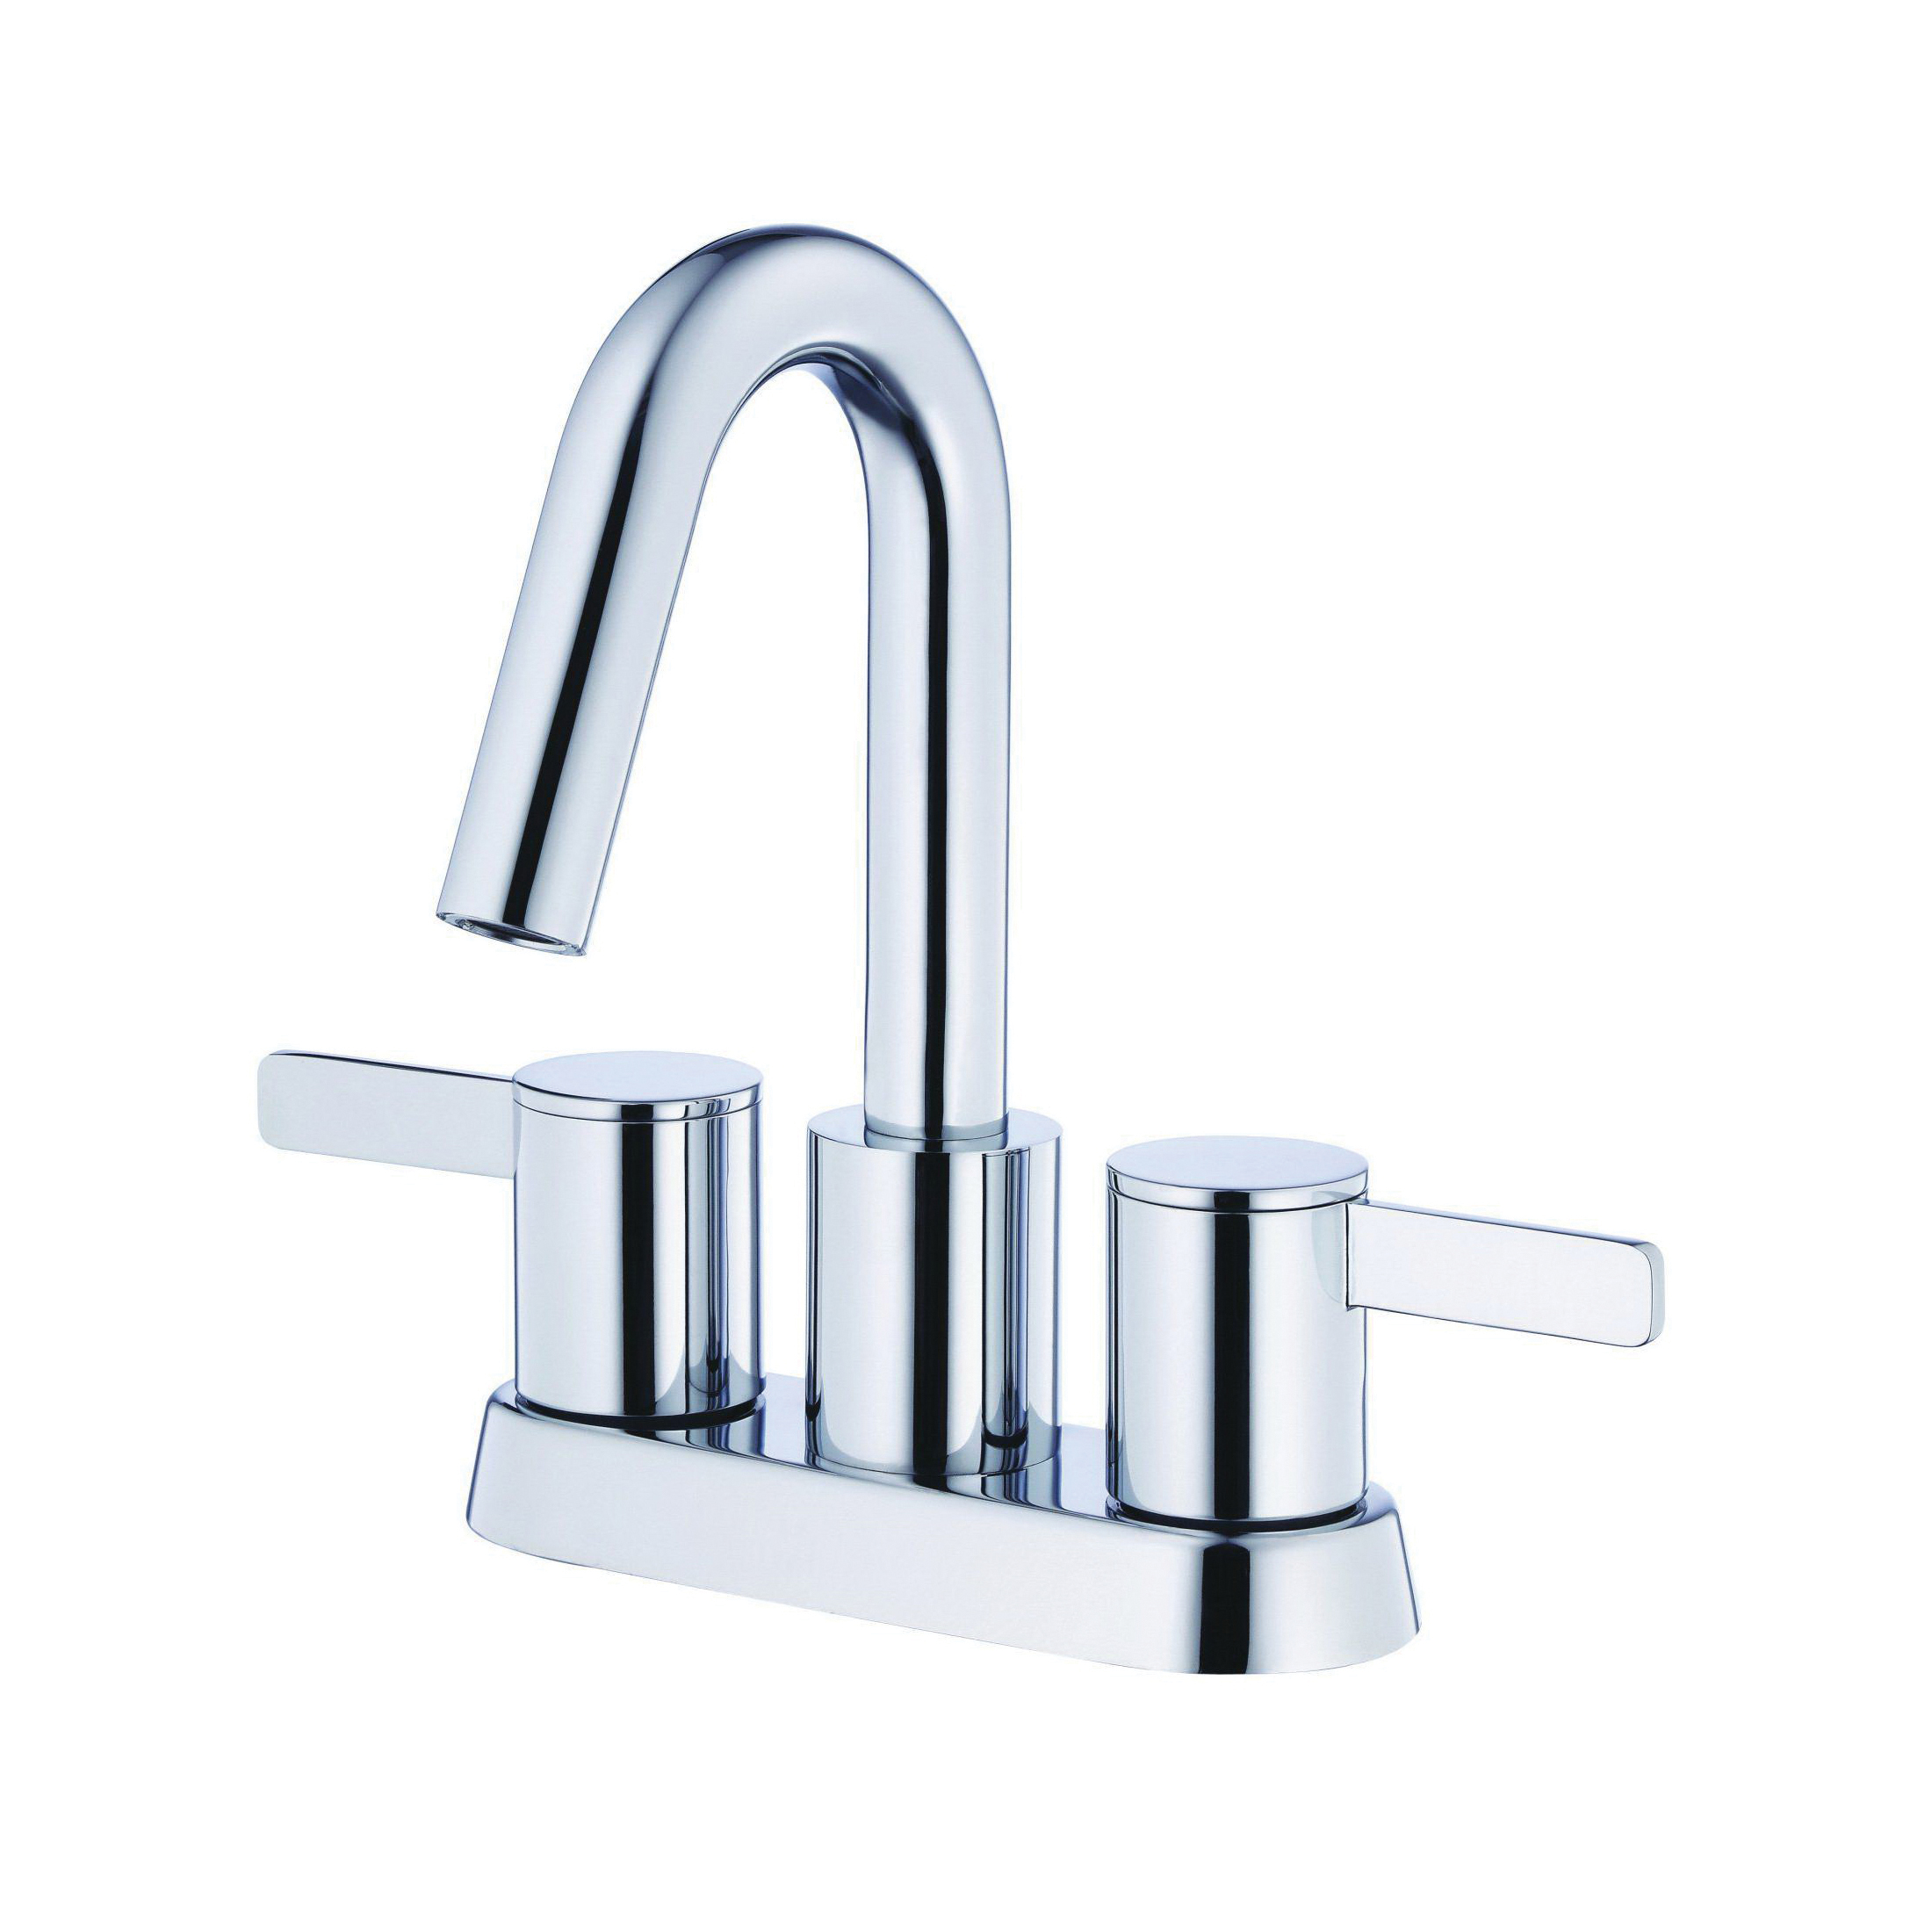 Danze® D301130 Centerset Lavatory Faucet, Amalfi™, Polished Chrome, 2 Handles, 50/50 Touch-Down Pop-Up Drain, 1.2 gpm